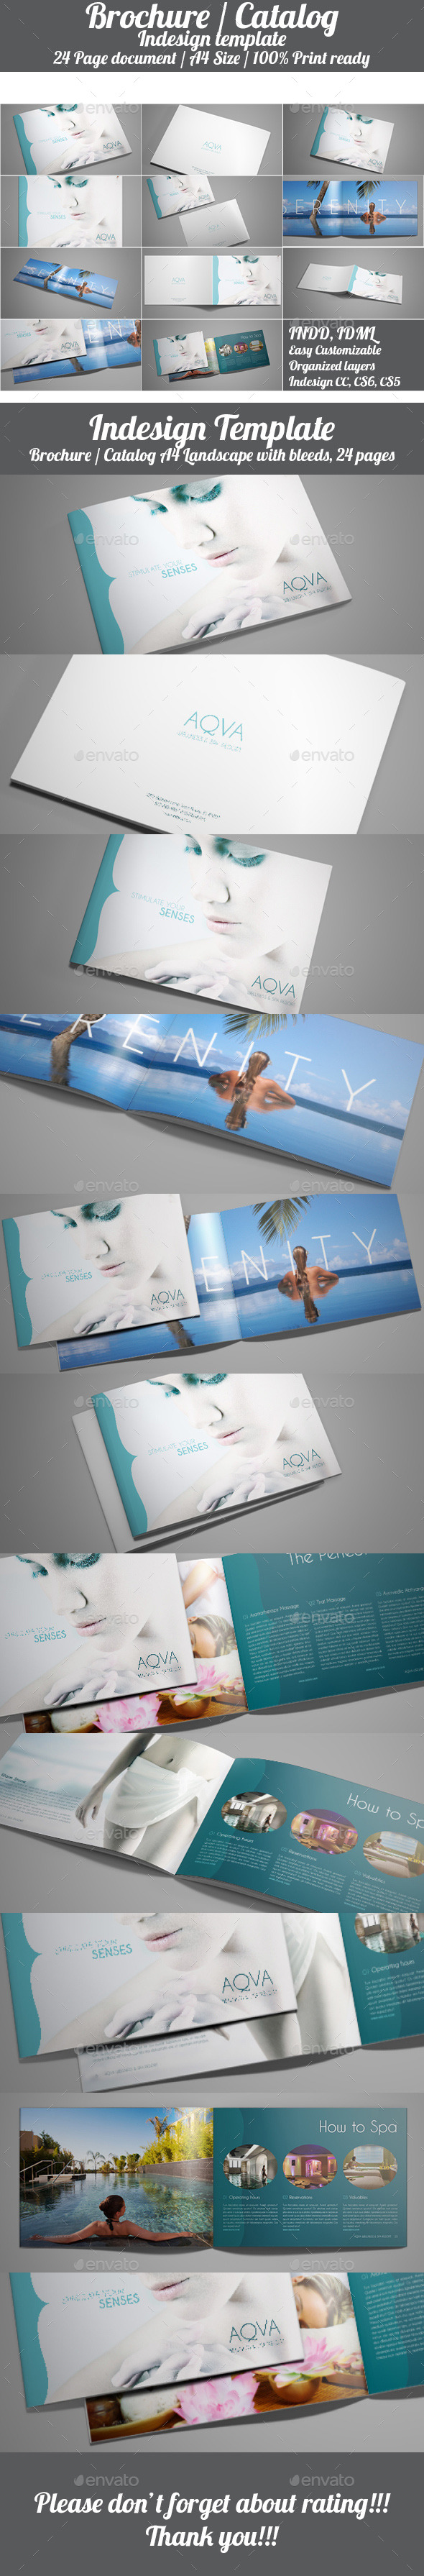 GraphicRiver Indesign Catalog Brochure Template 11155870